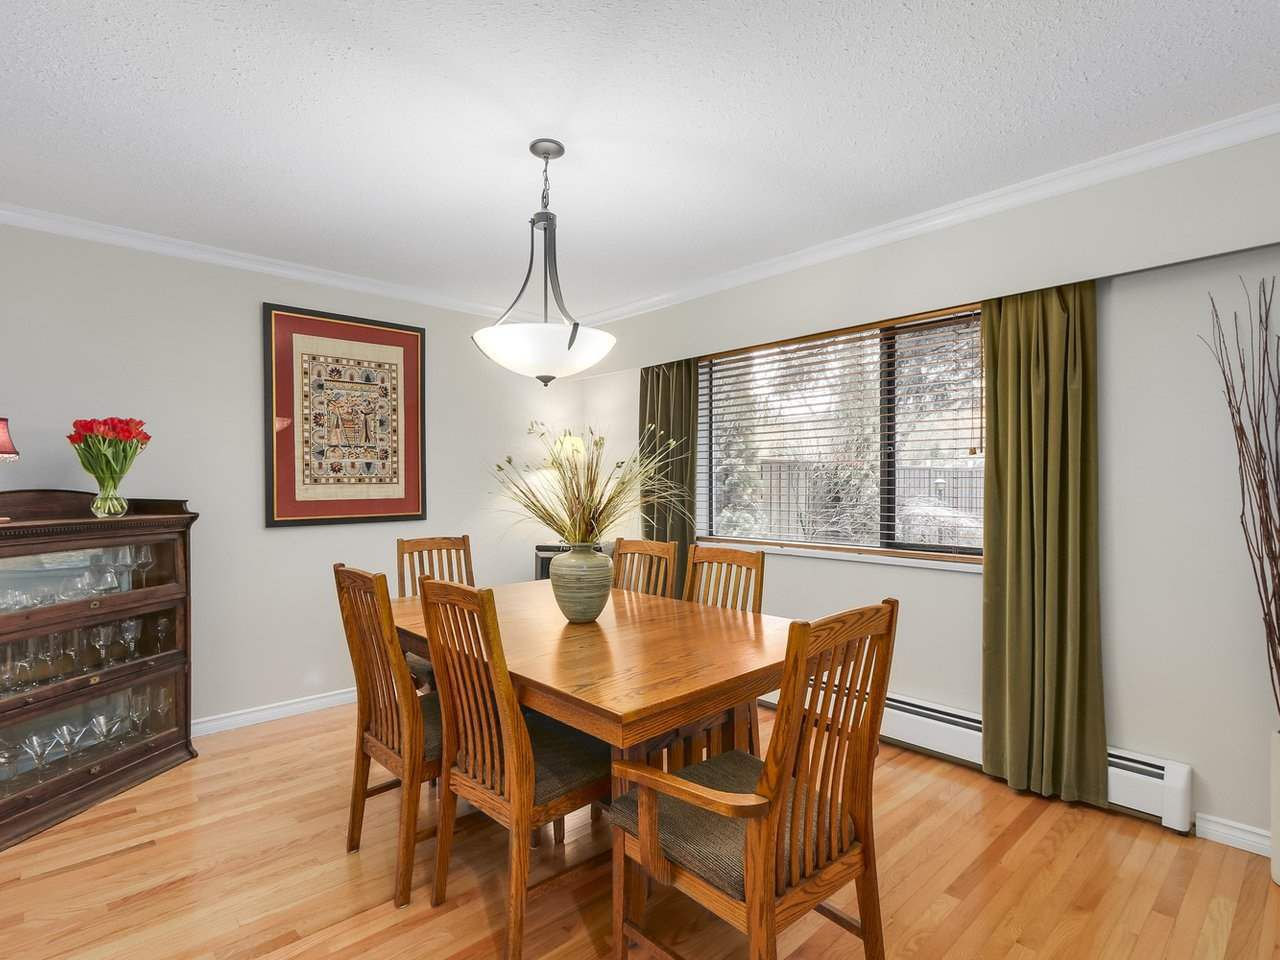 Photo 4: Photos: 887 KELVIN Street in Coquitlam: Harbour Chines House for sale : MLS®# R2240068